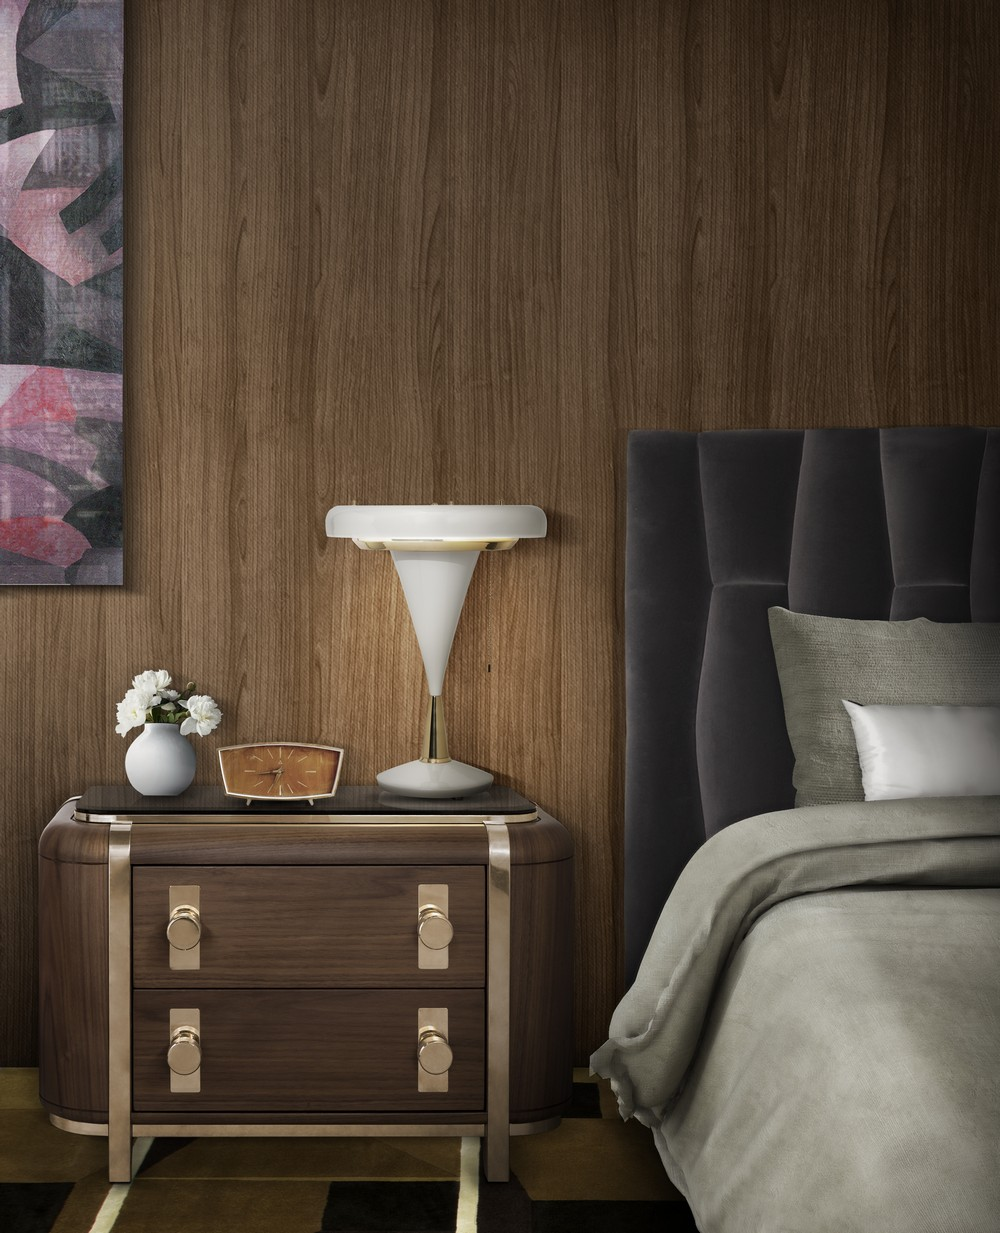 Luxury Nightstands How Highly Curated Drawer Handles Make a Change_3 luxury nightstands Luxury Nightstands: How Highly Curated Drawer Handles Make a Change Luxury Nightstands How Highly Curated Drawer Handles Make a Change 3